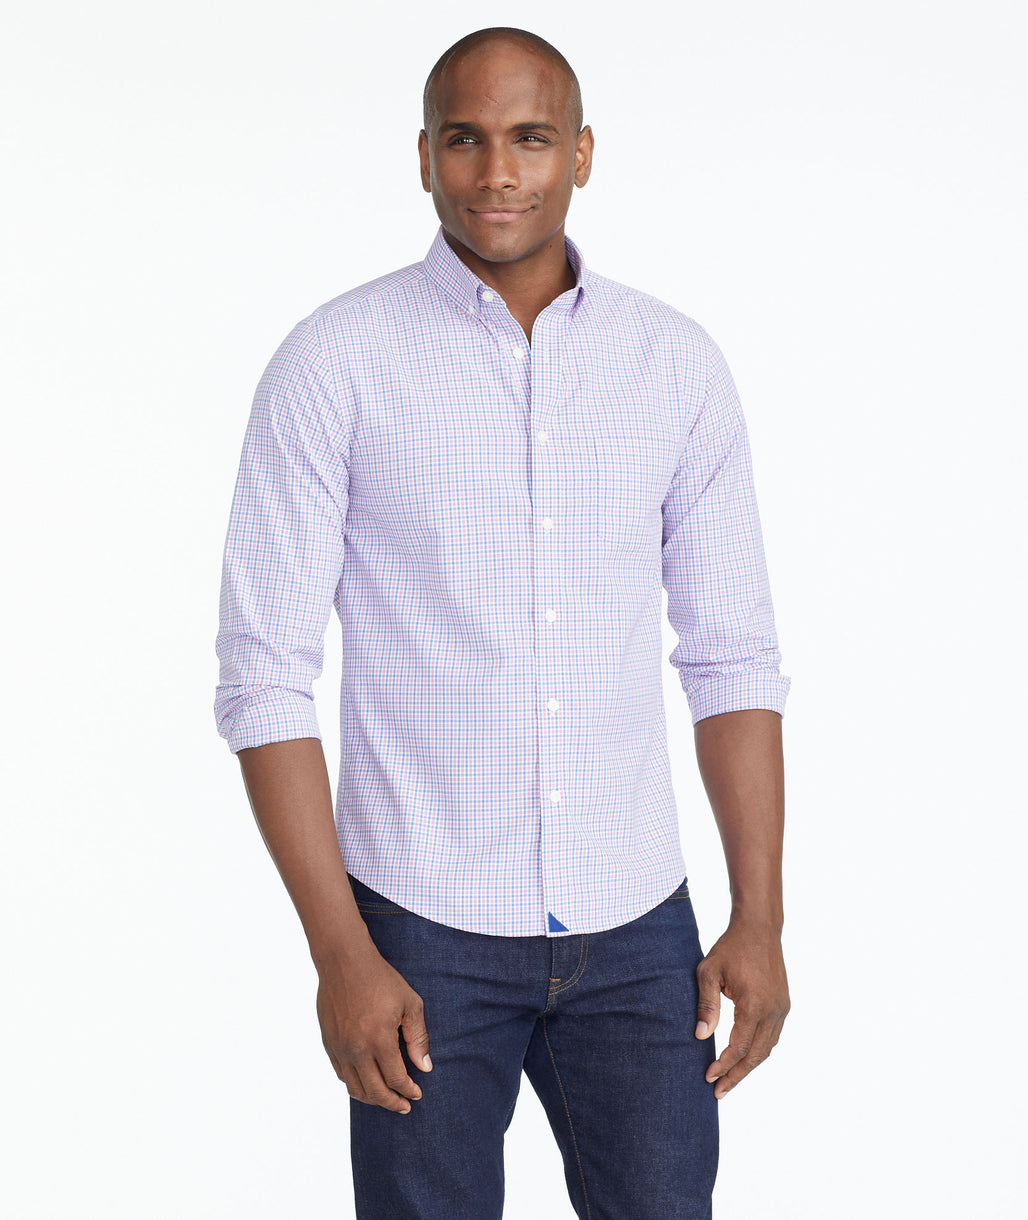 Model wearing a Mid Blue Luxe Wrinkle-Free Monroeville Shirt